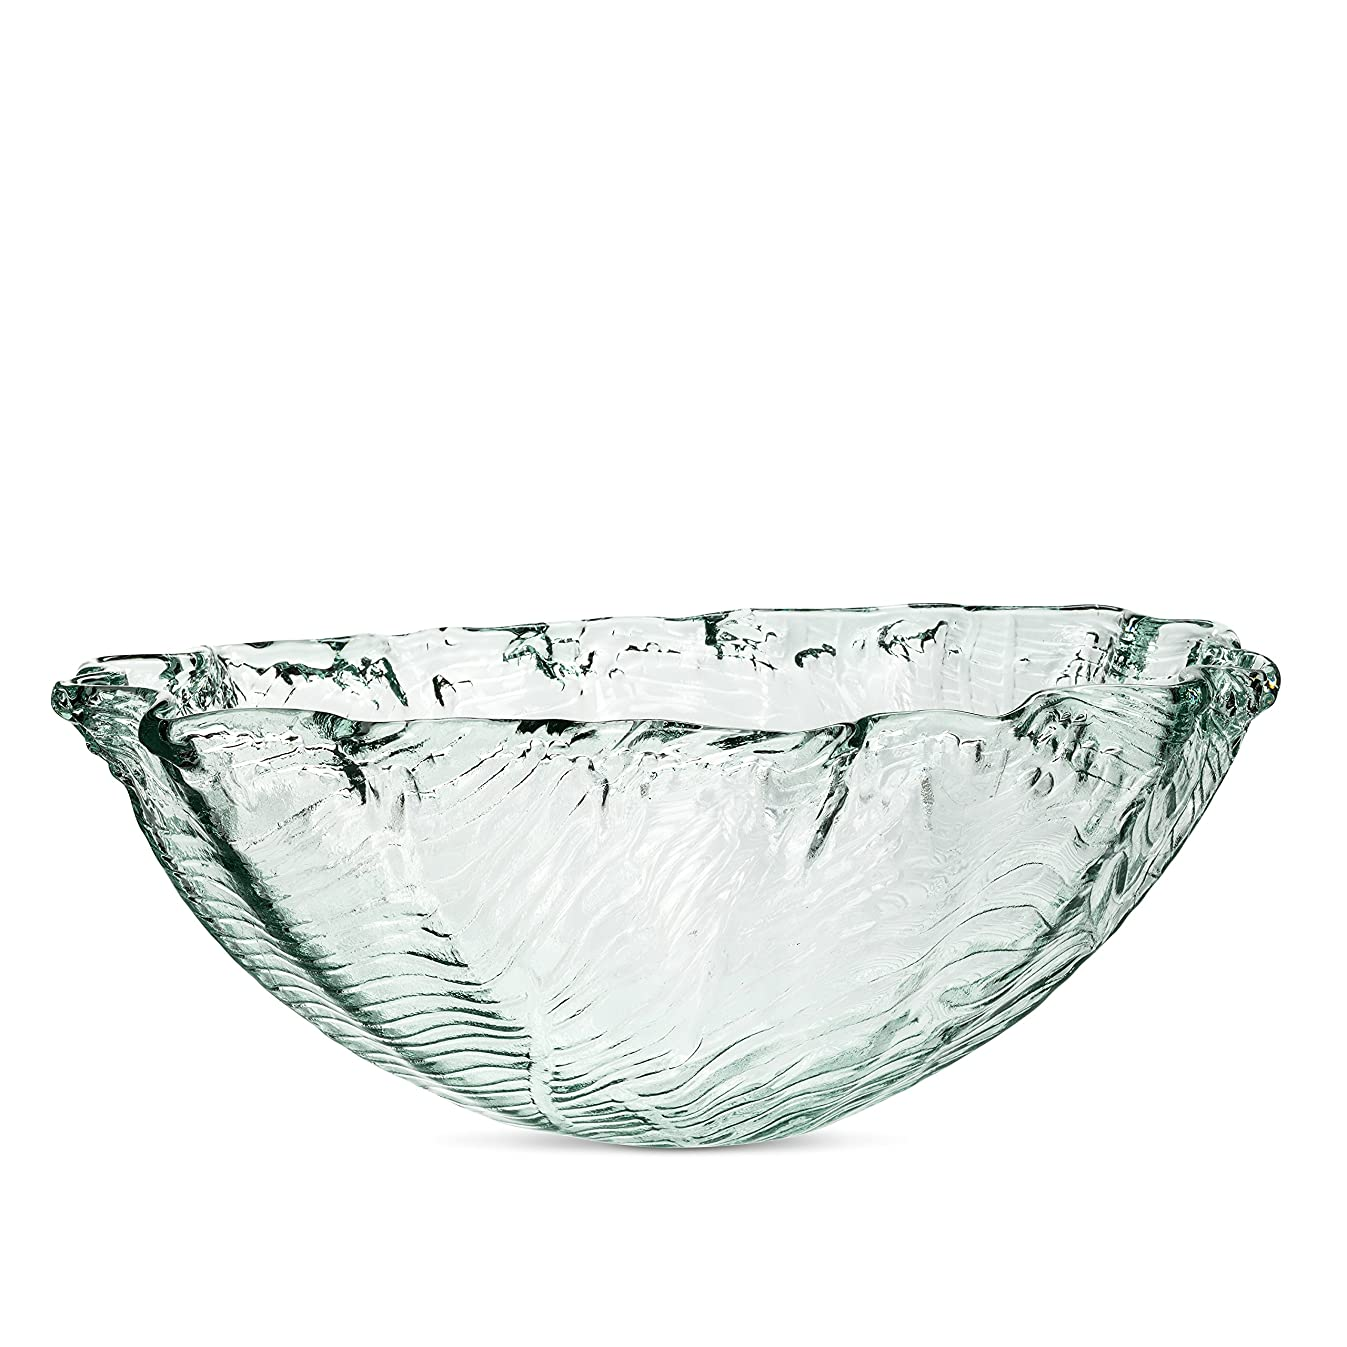 Abbott Collection 83-SEQUOIA-503 Textured Clam Bowl Clear